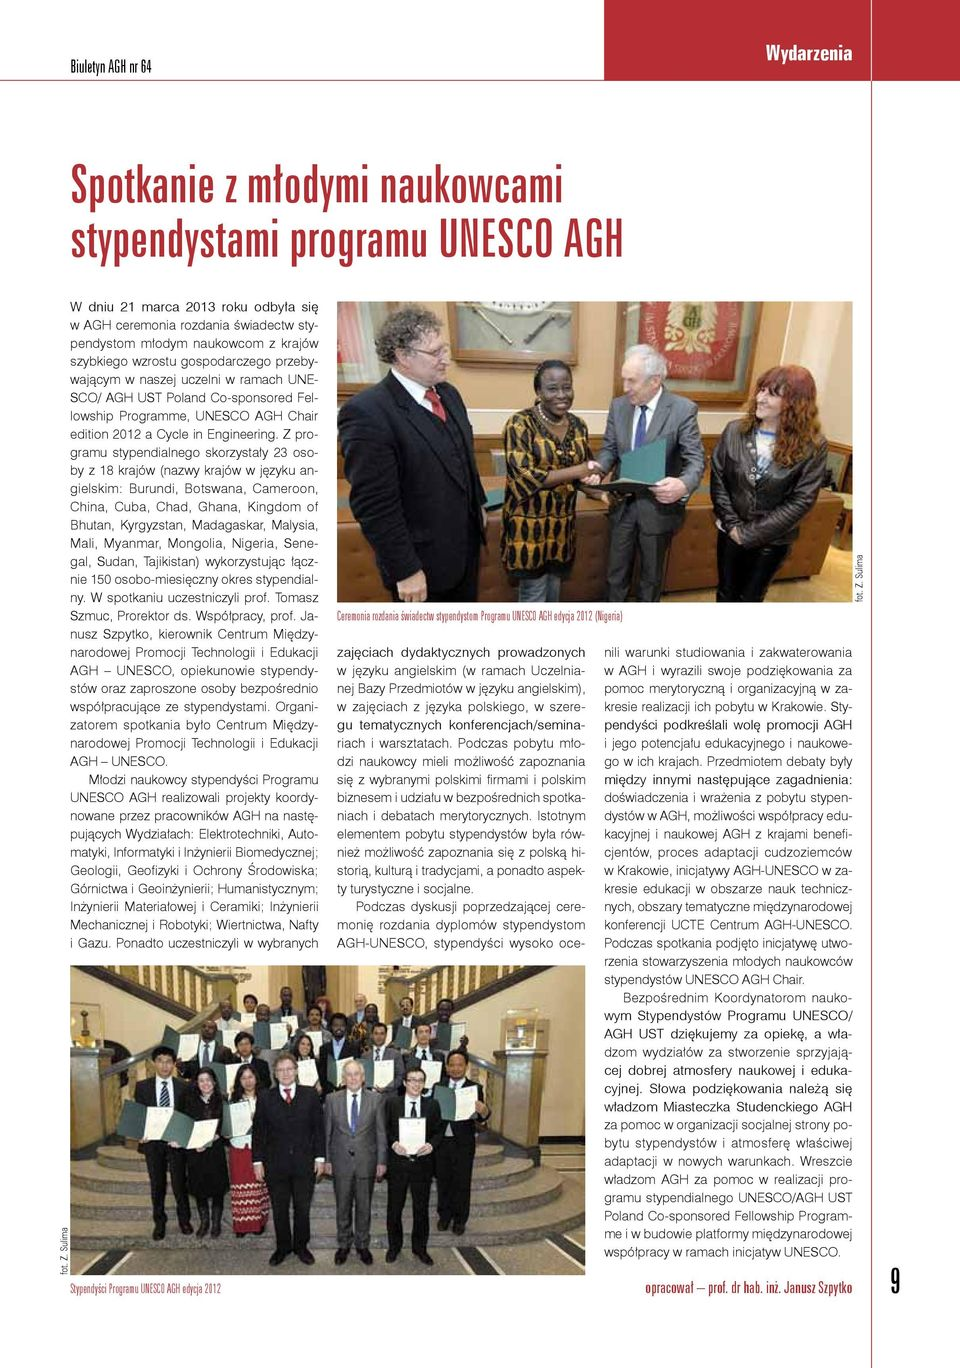 AGH UST Poland Co-sponsored Fellowship Programme, UNESCO AGH Chair edition 2012 a Cycle in Engineering.